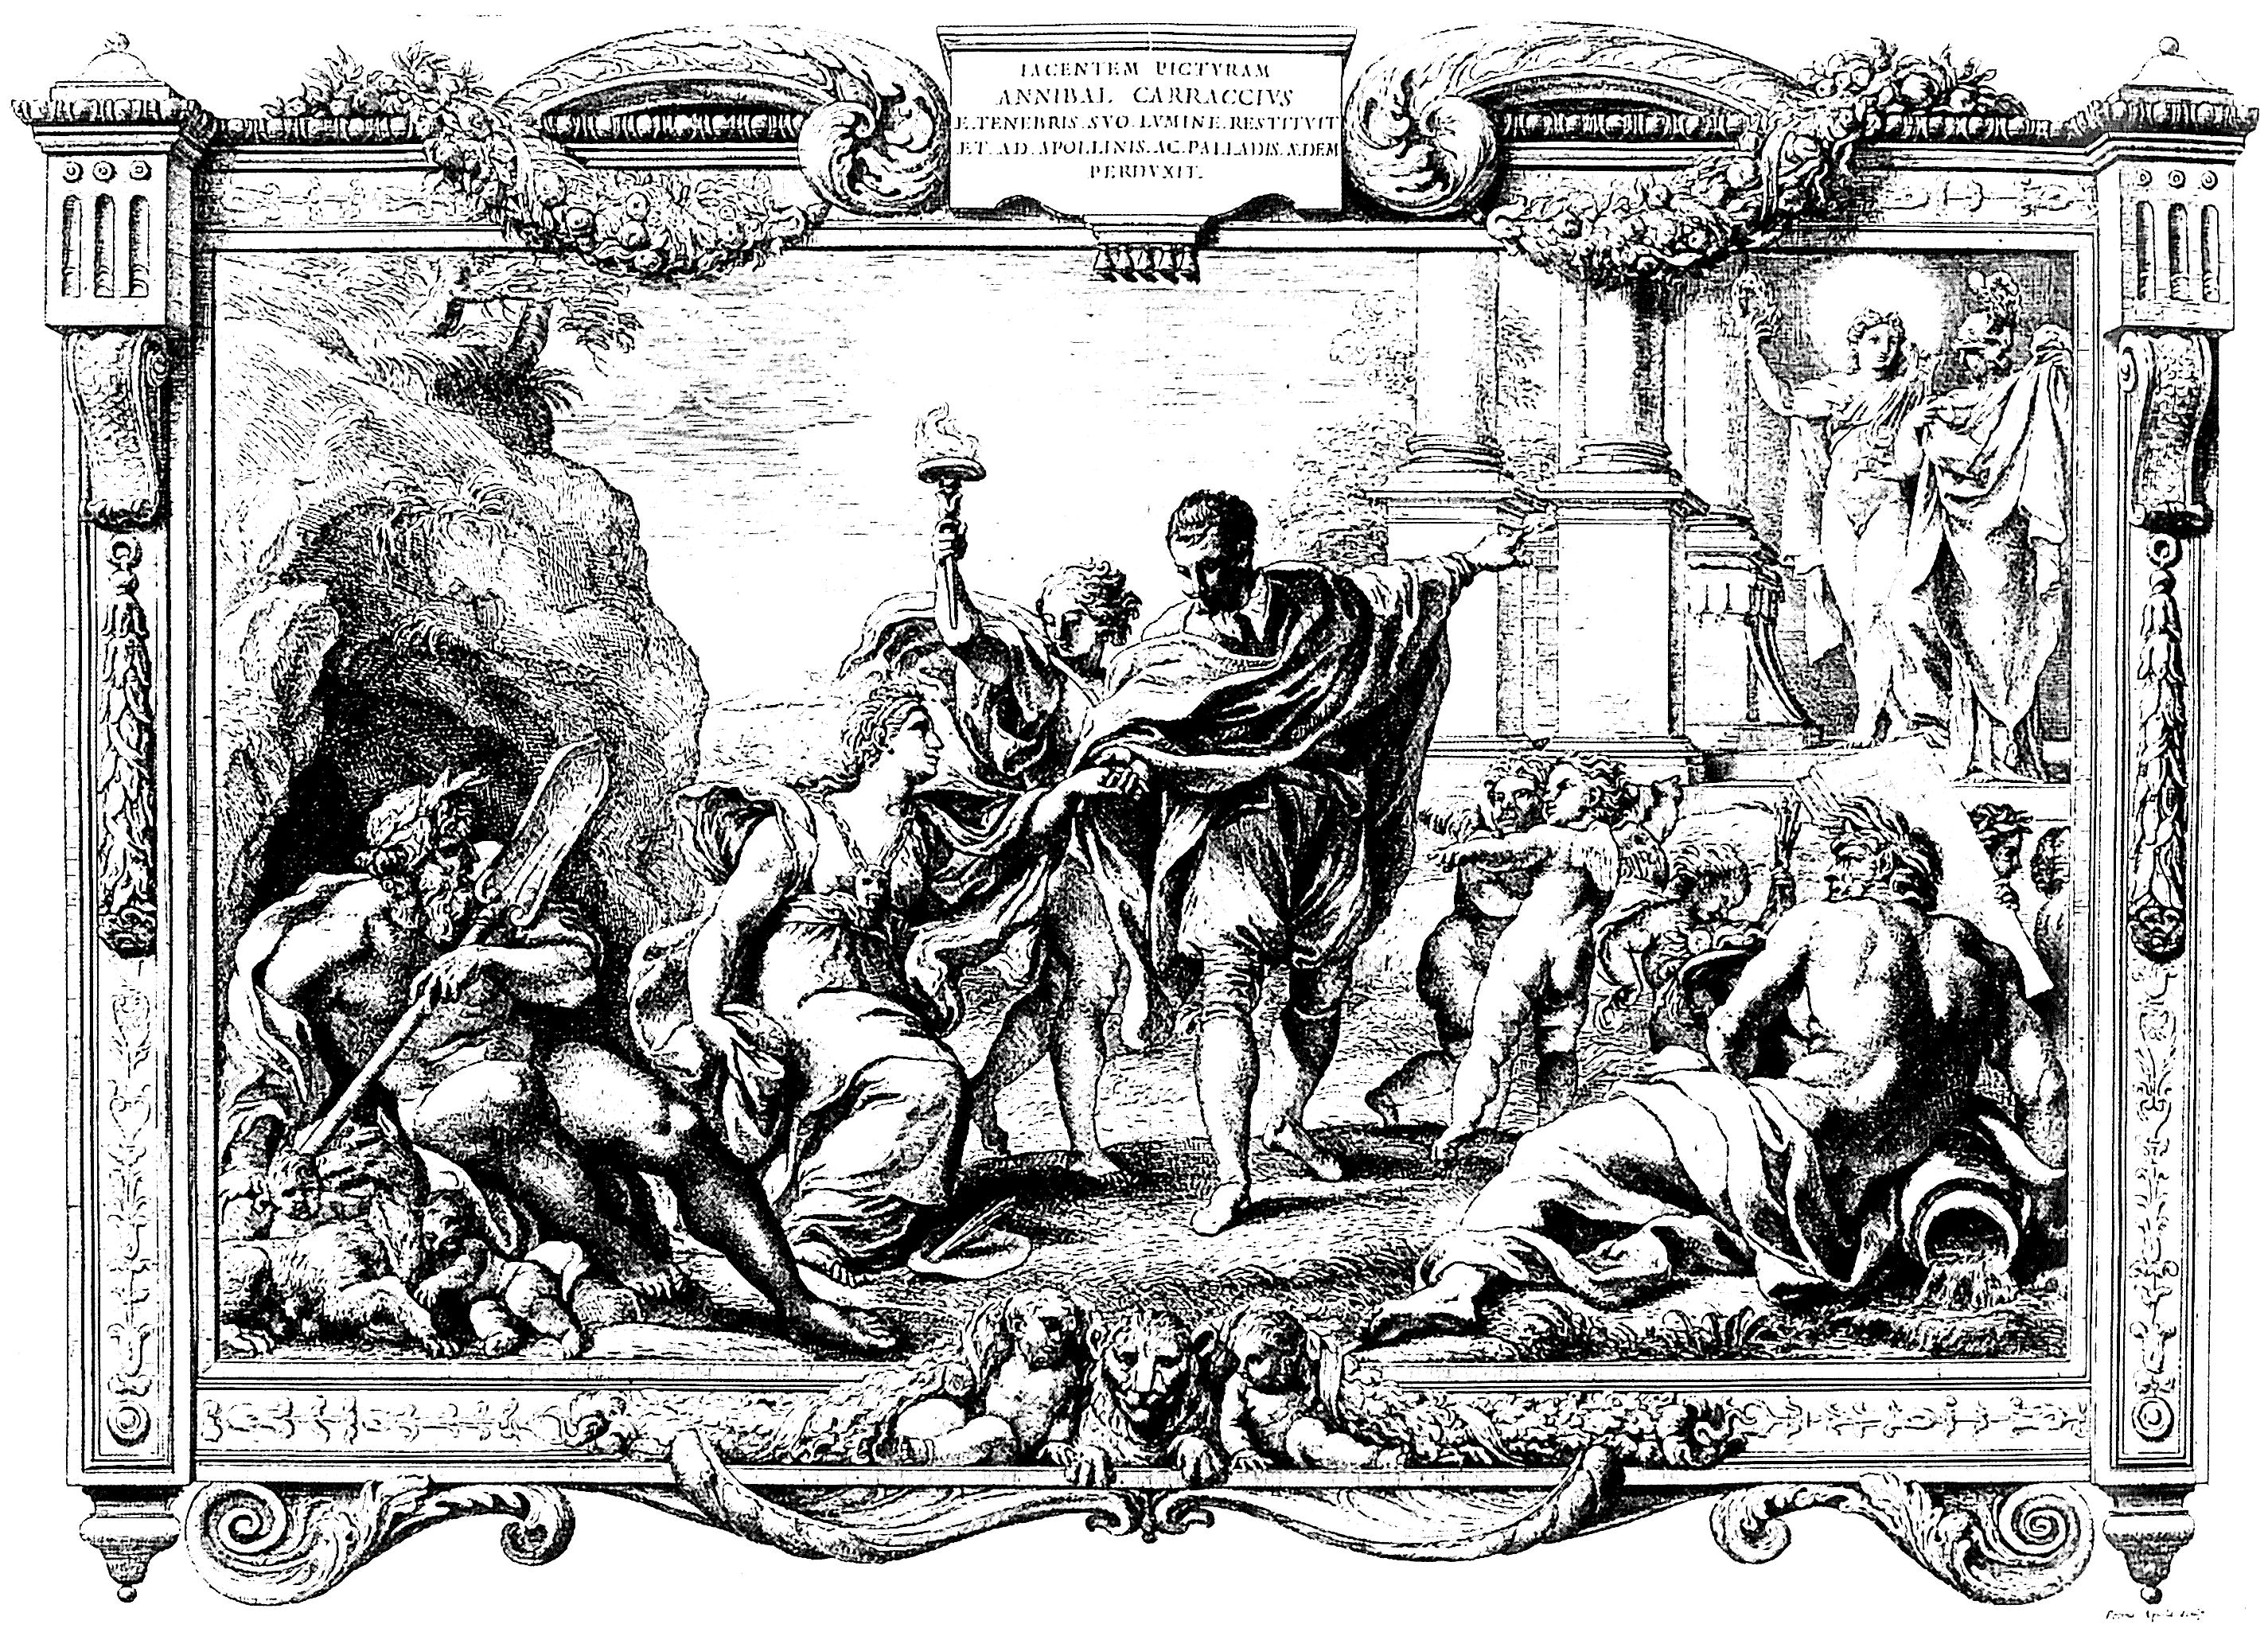 Annibale Carracci Introduces Painting to Apollo and Minerva, Engraving by Pietro Aquila, 1674